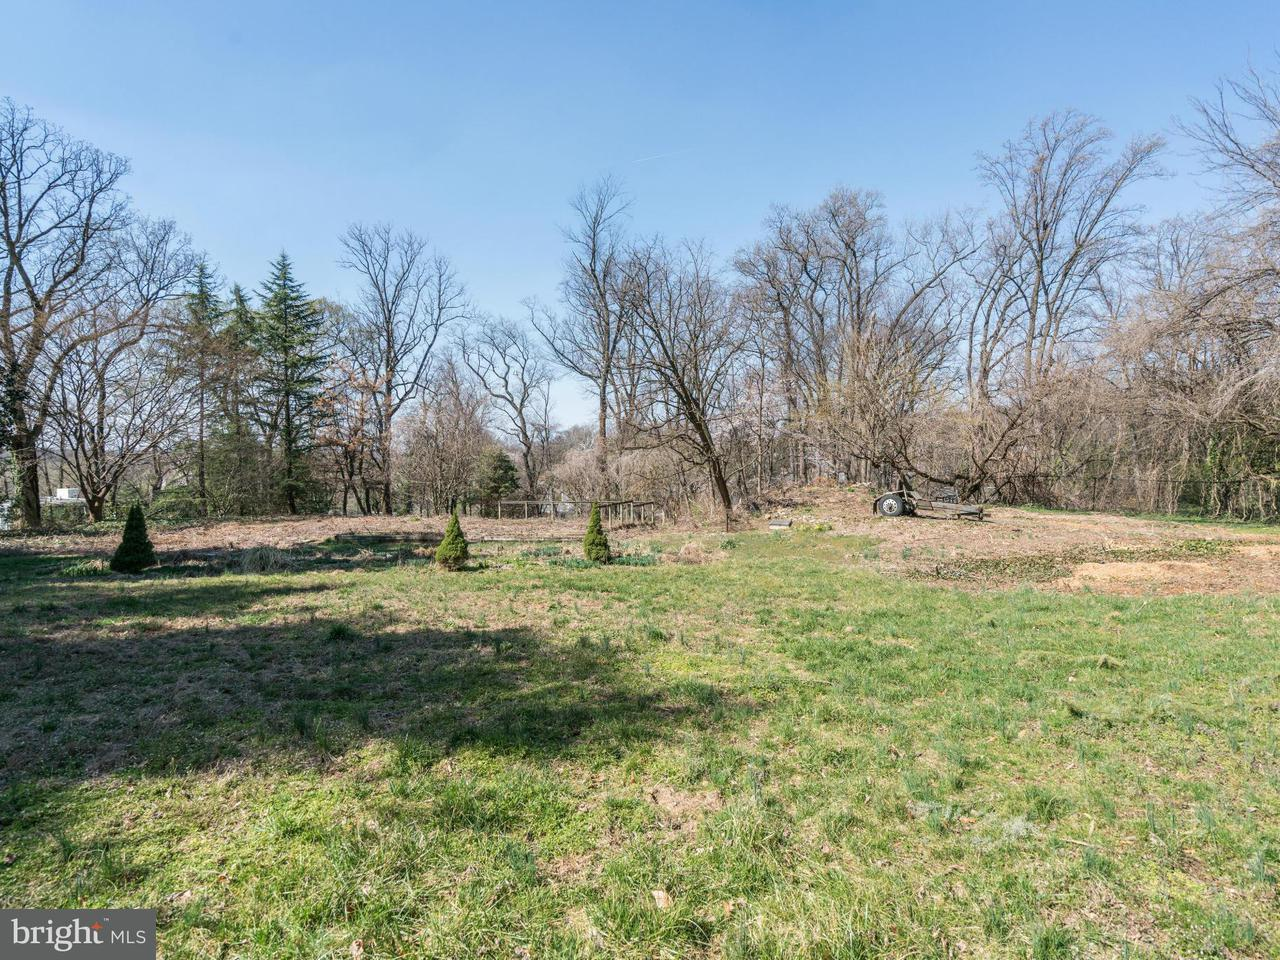 Land for Sale at 2960 University Ter NW Washington, District Of Columbia 20016 United States